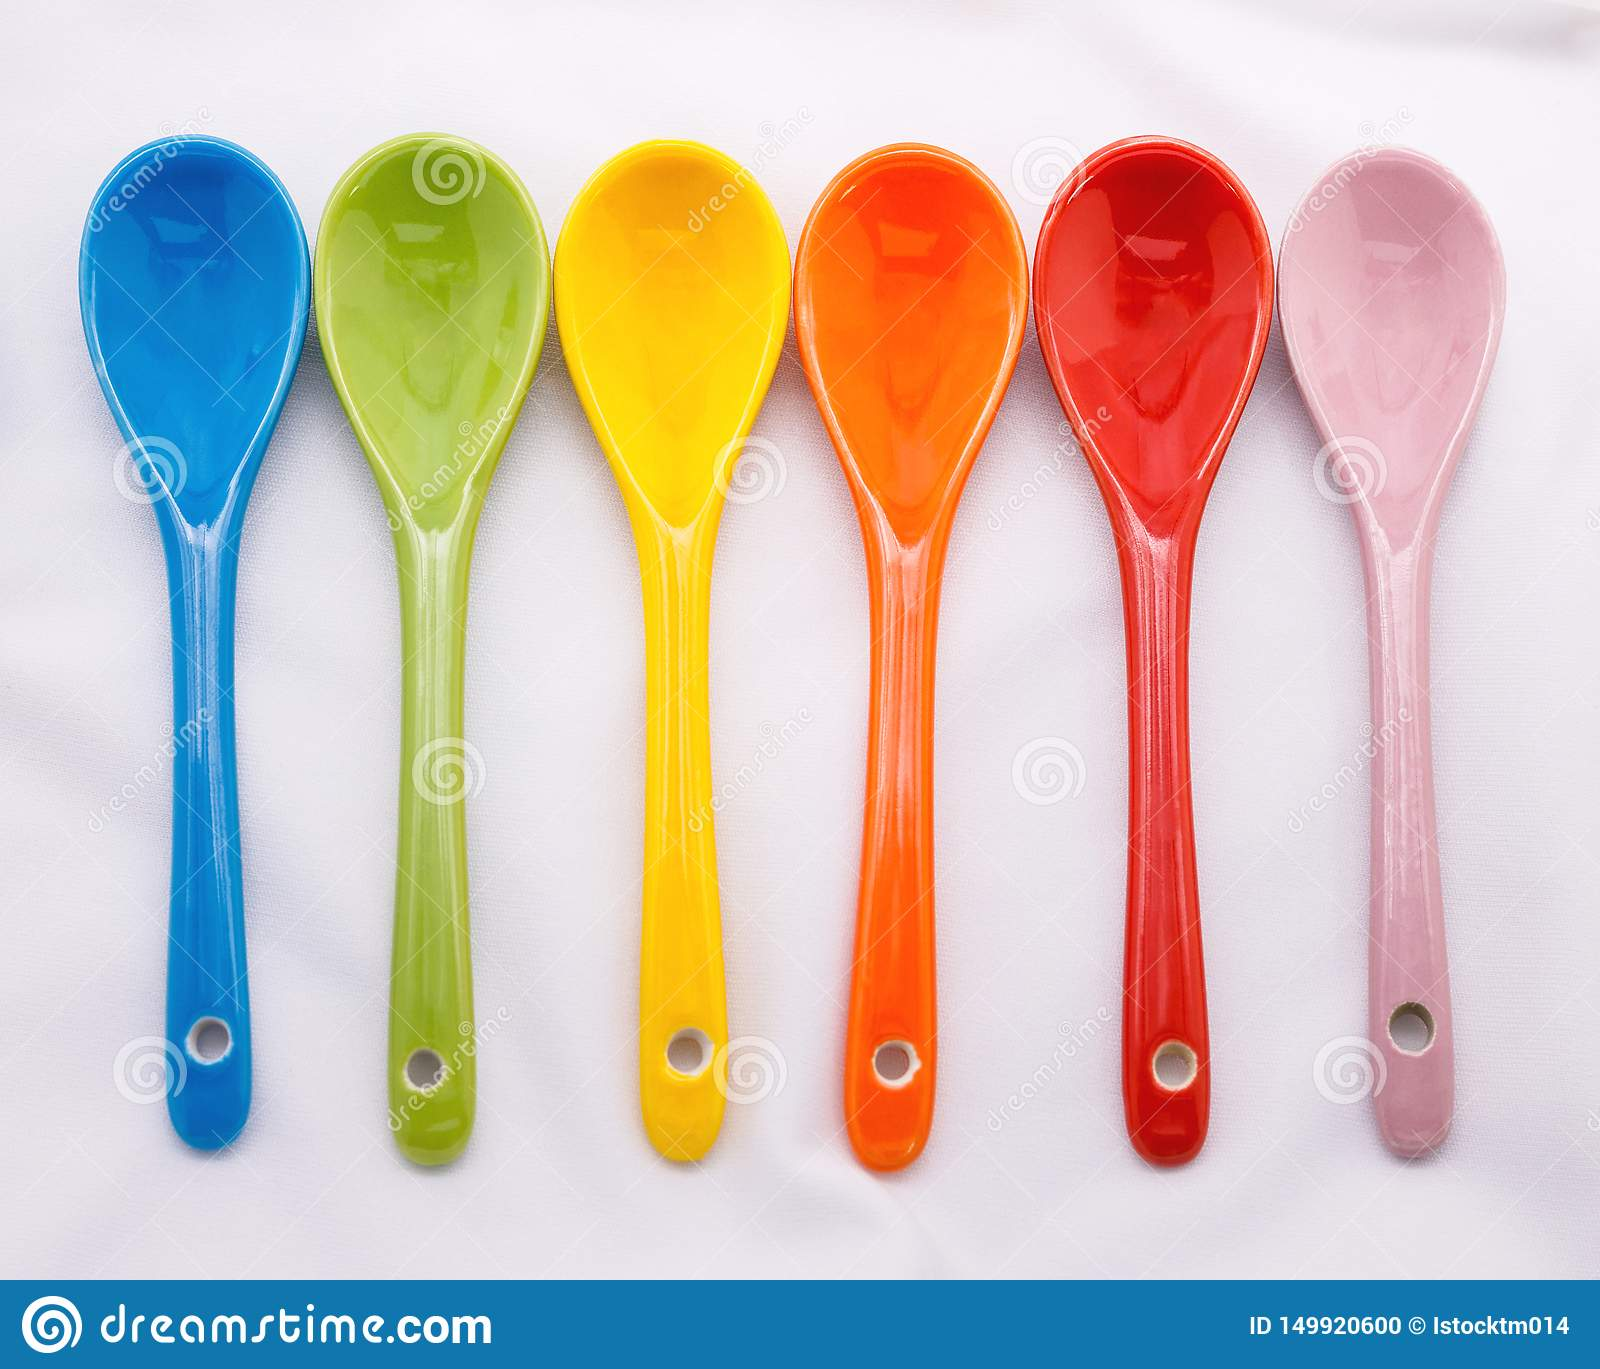 Colors ceramics spoon on white fabric background. Colorful concept